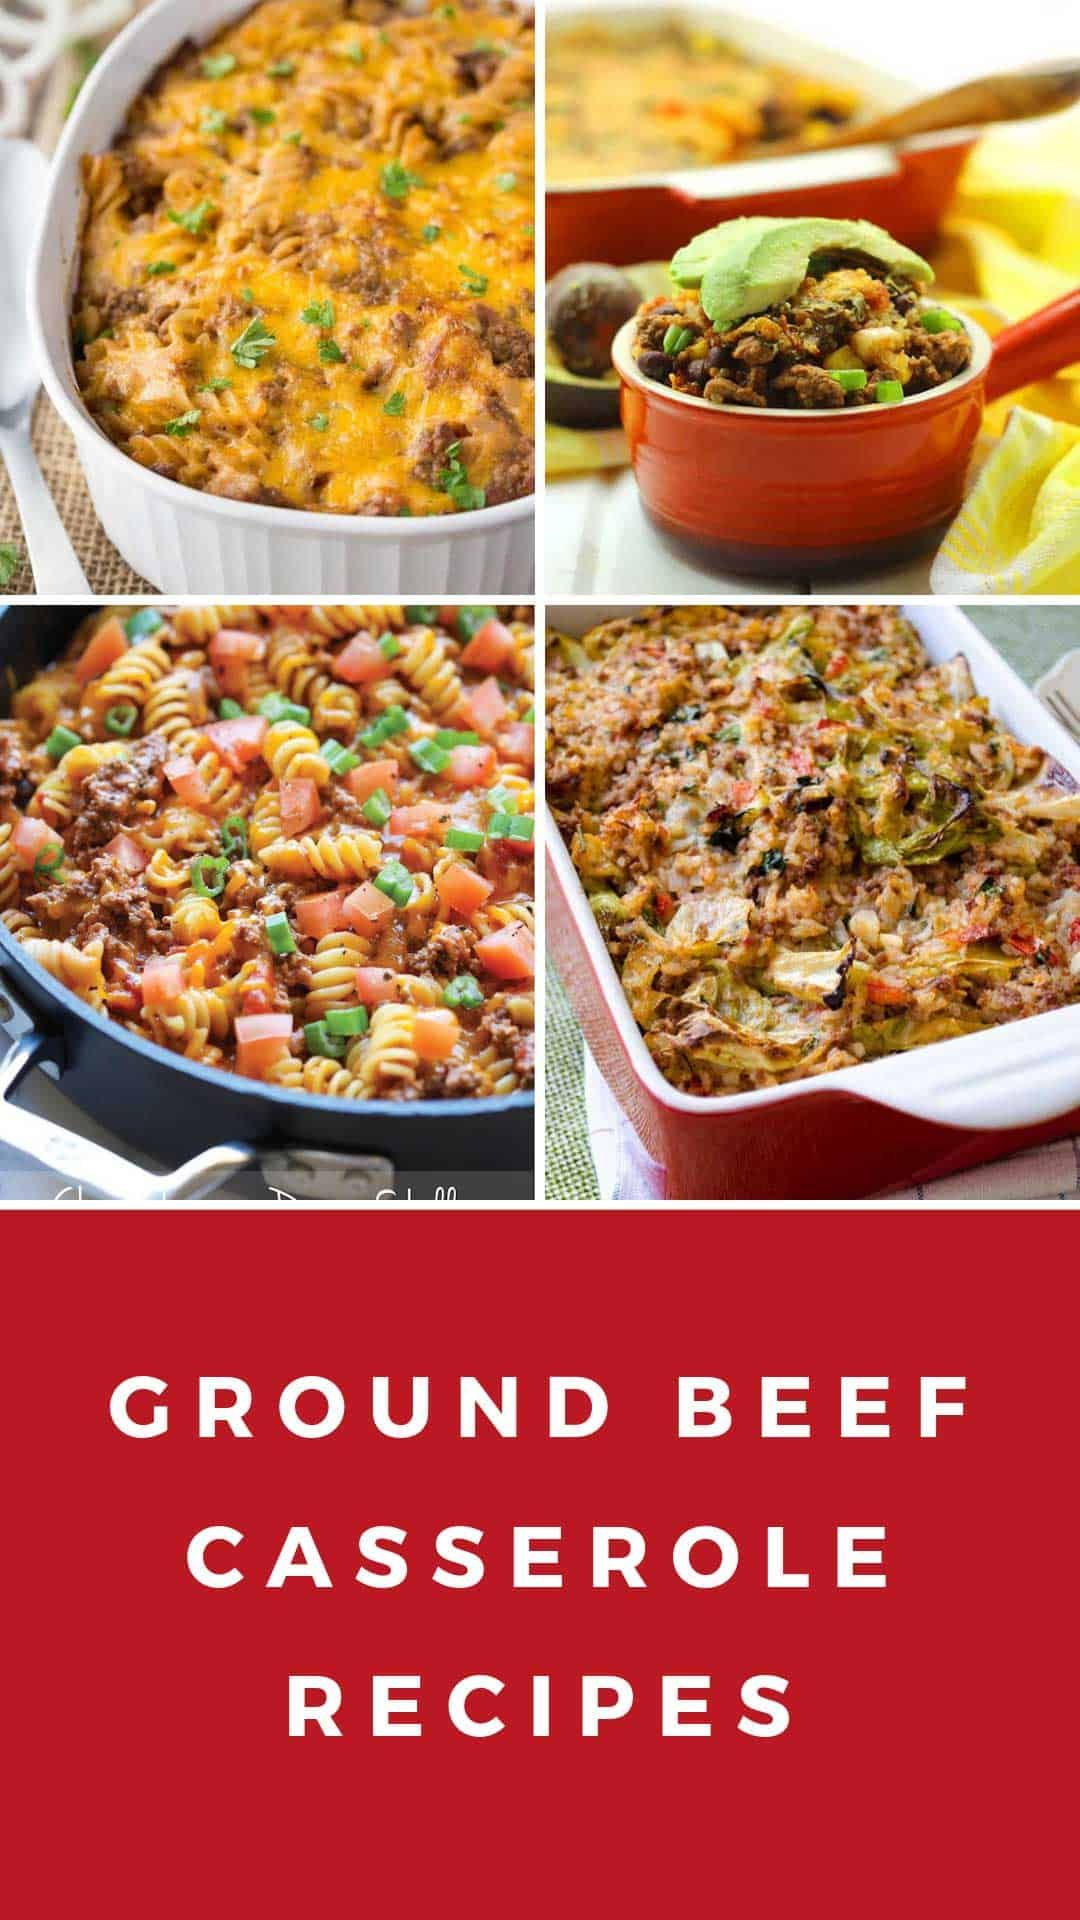 22 Easy Ground Beef Casserole Recipes For Budget Friendly Midweek Meals Ground Beef Casserole Recipes Beef Casserole Recipes Ground Beef Casserole